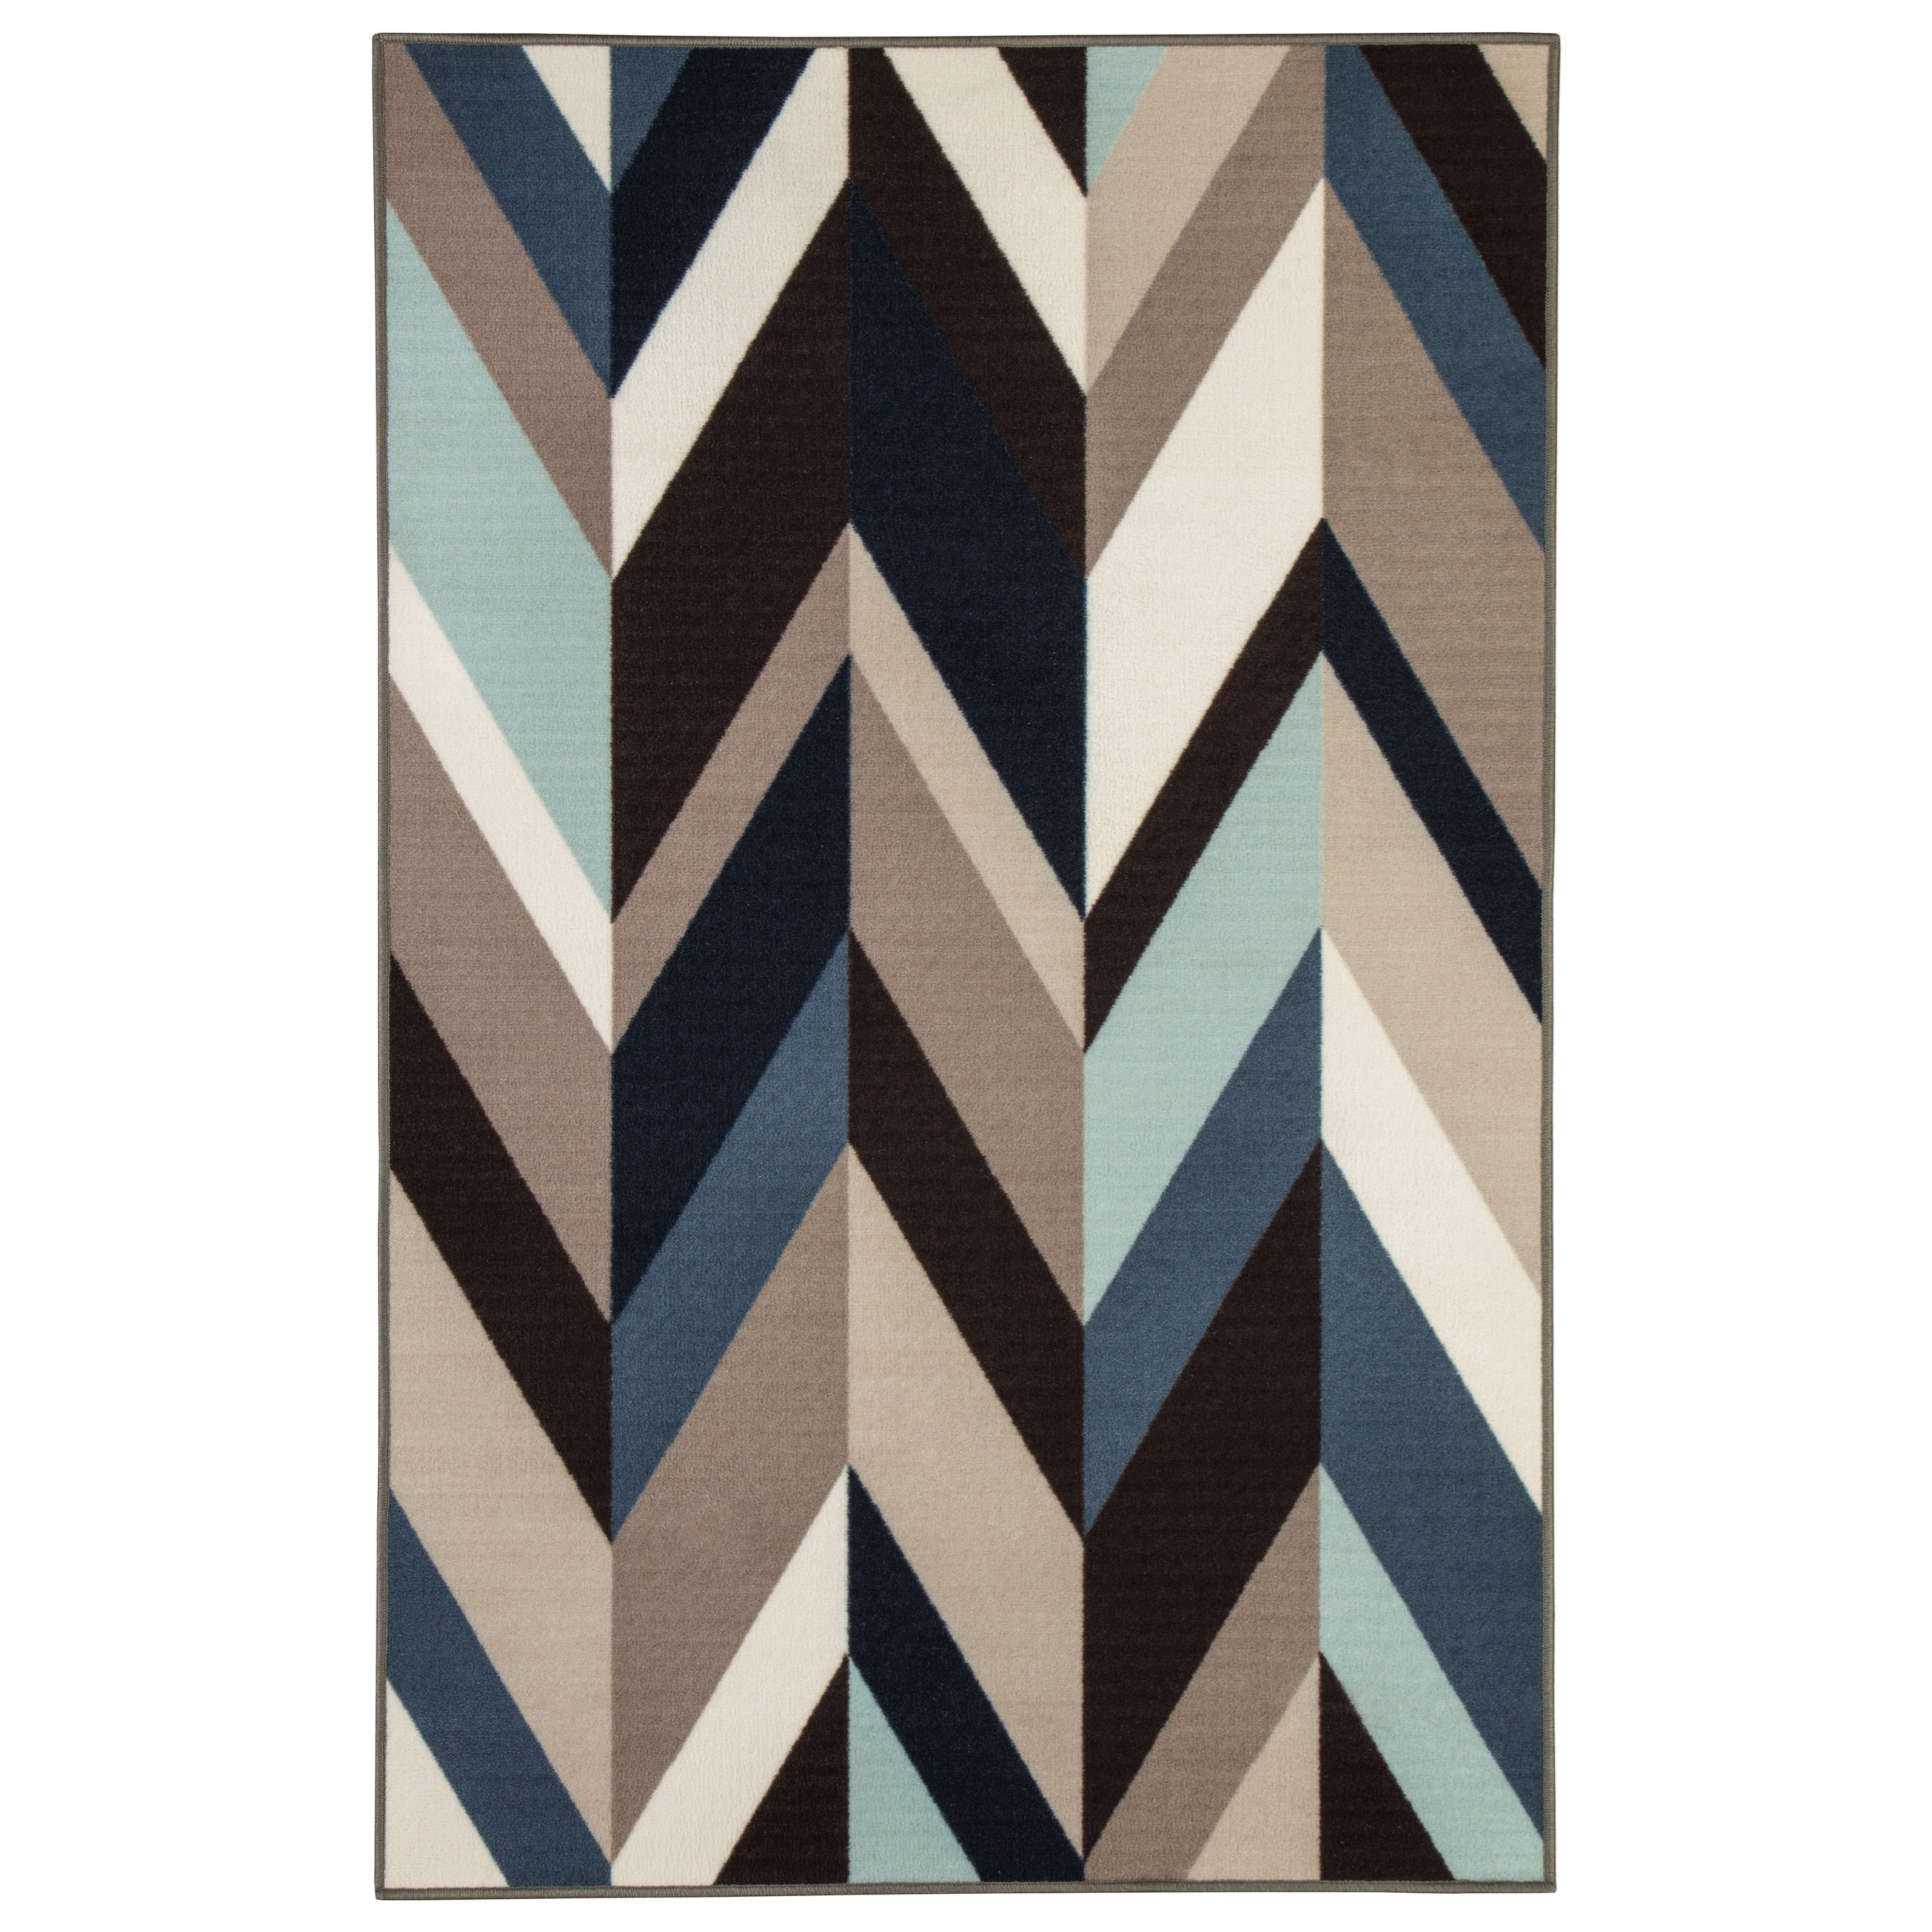 Signature Design by Ashley Contemporary Area Rugs Keelia Blue/Brown/Gray Rug - Item Number: R400482